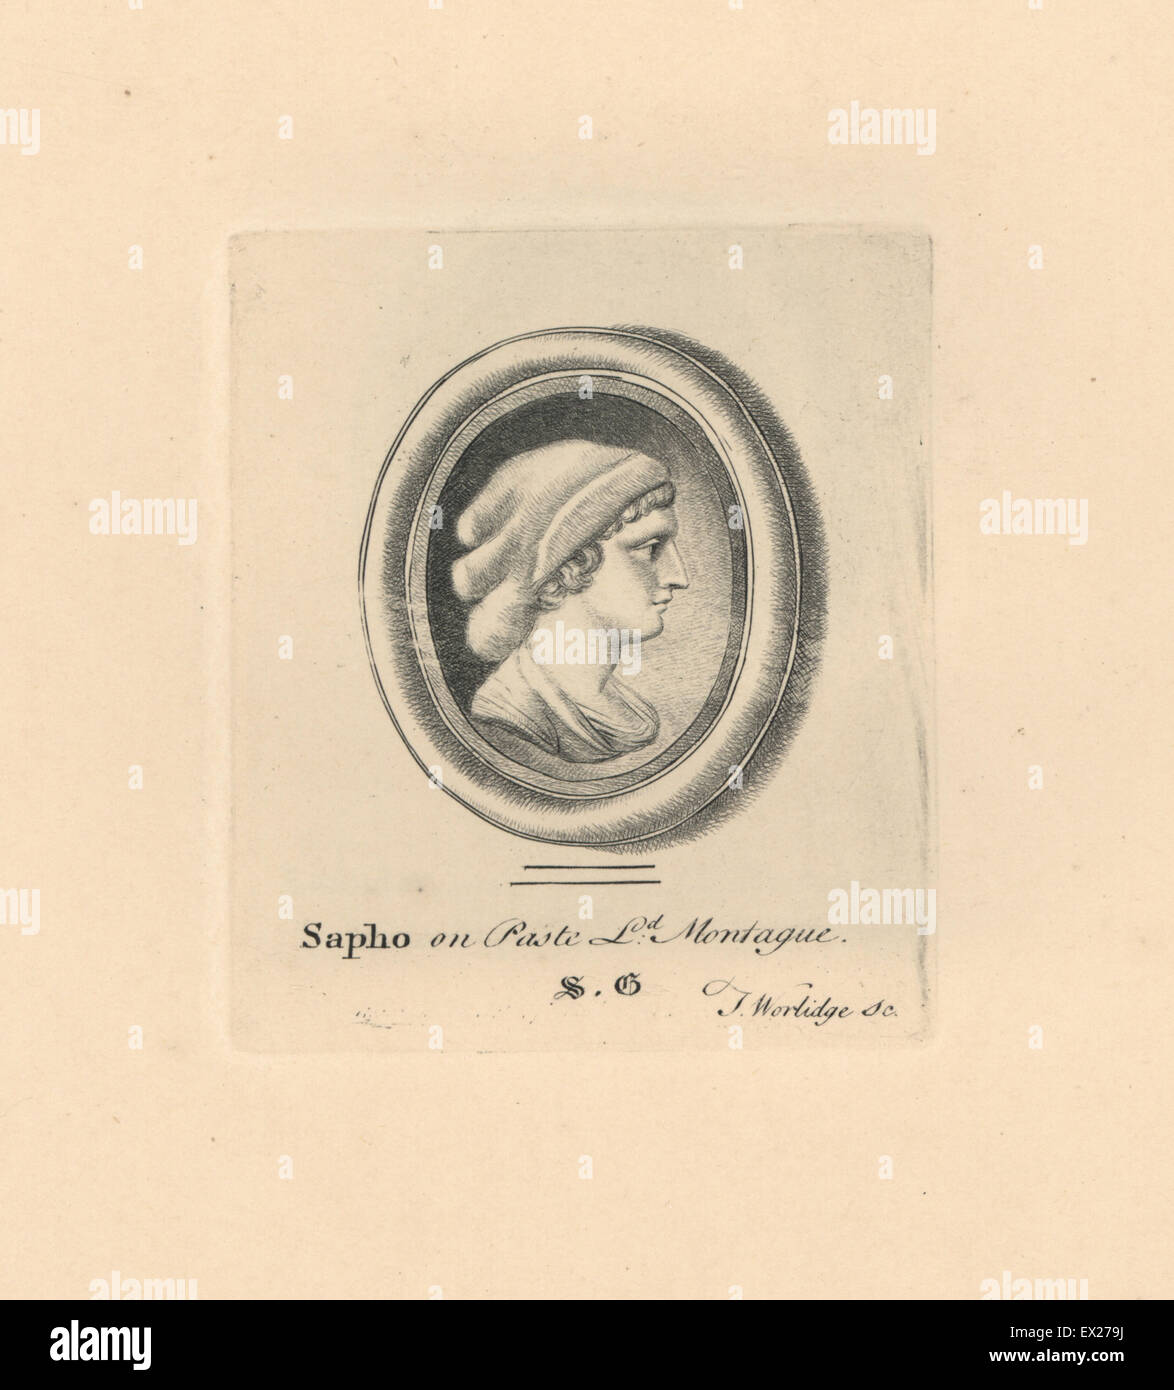 Portrait of Sapho or Sappho, Greek lyric poet from the island of Lesbos, in woven cap, on paste in Lord Montague's - Stock Image